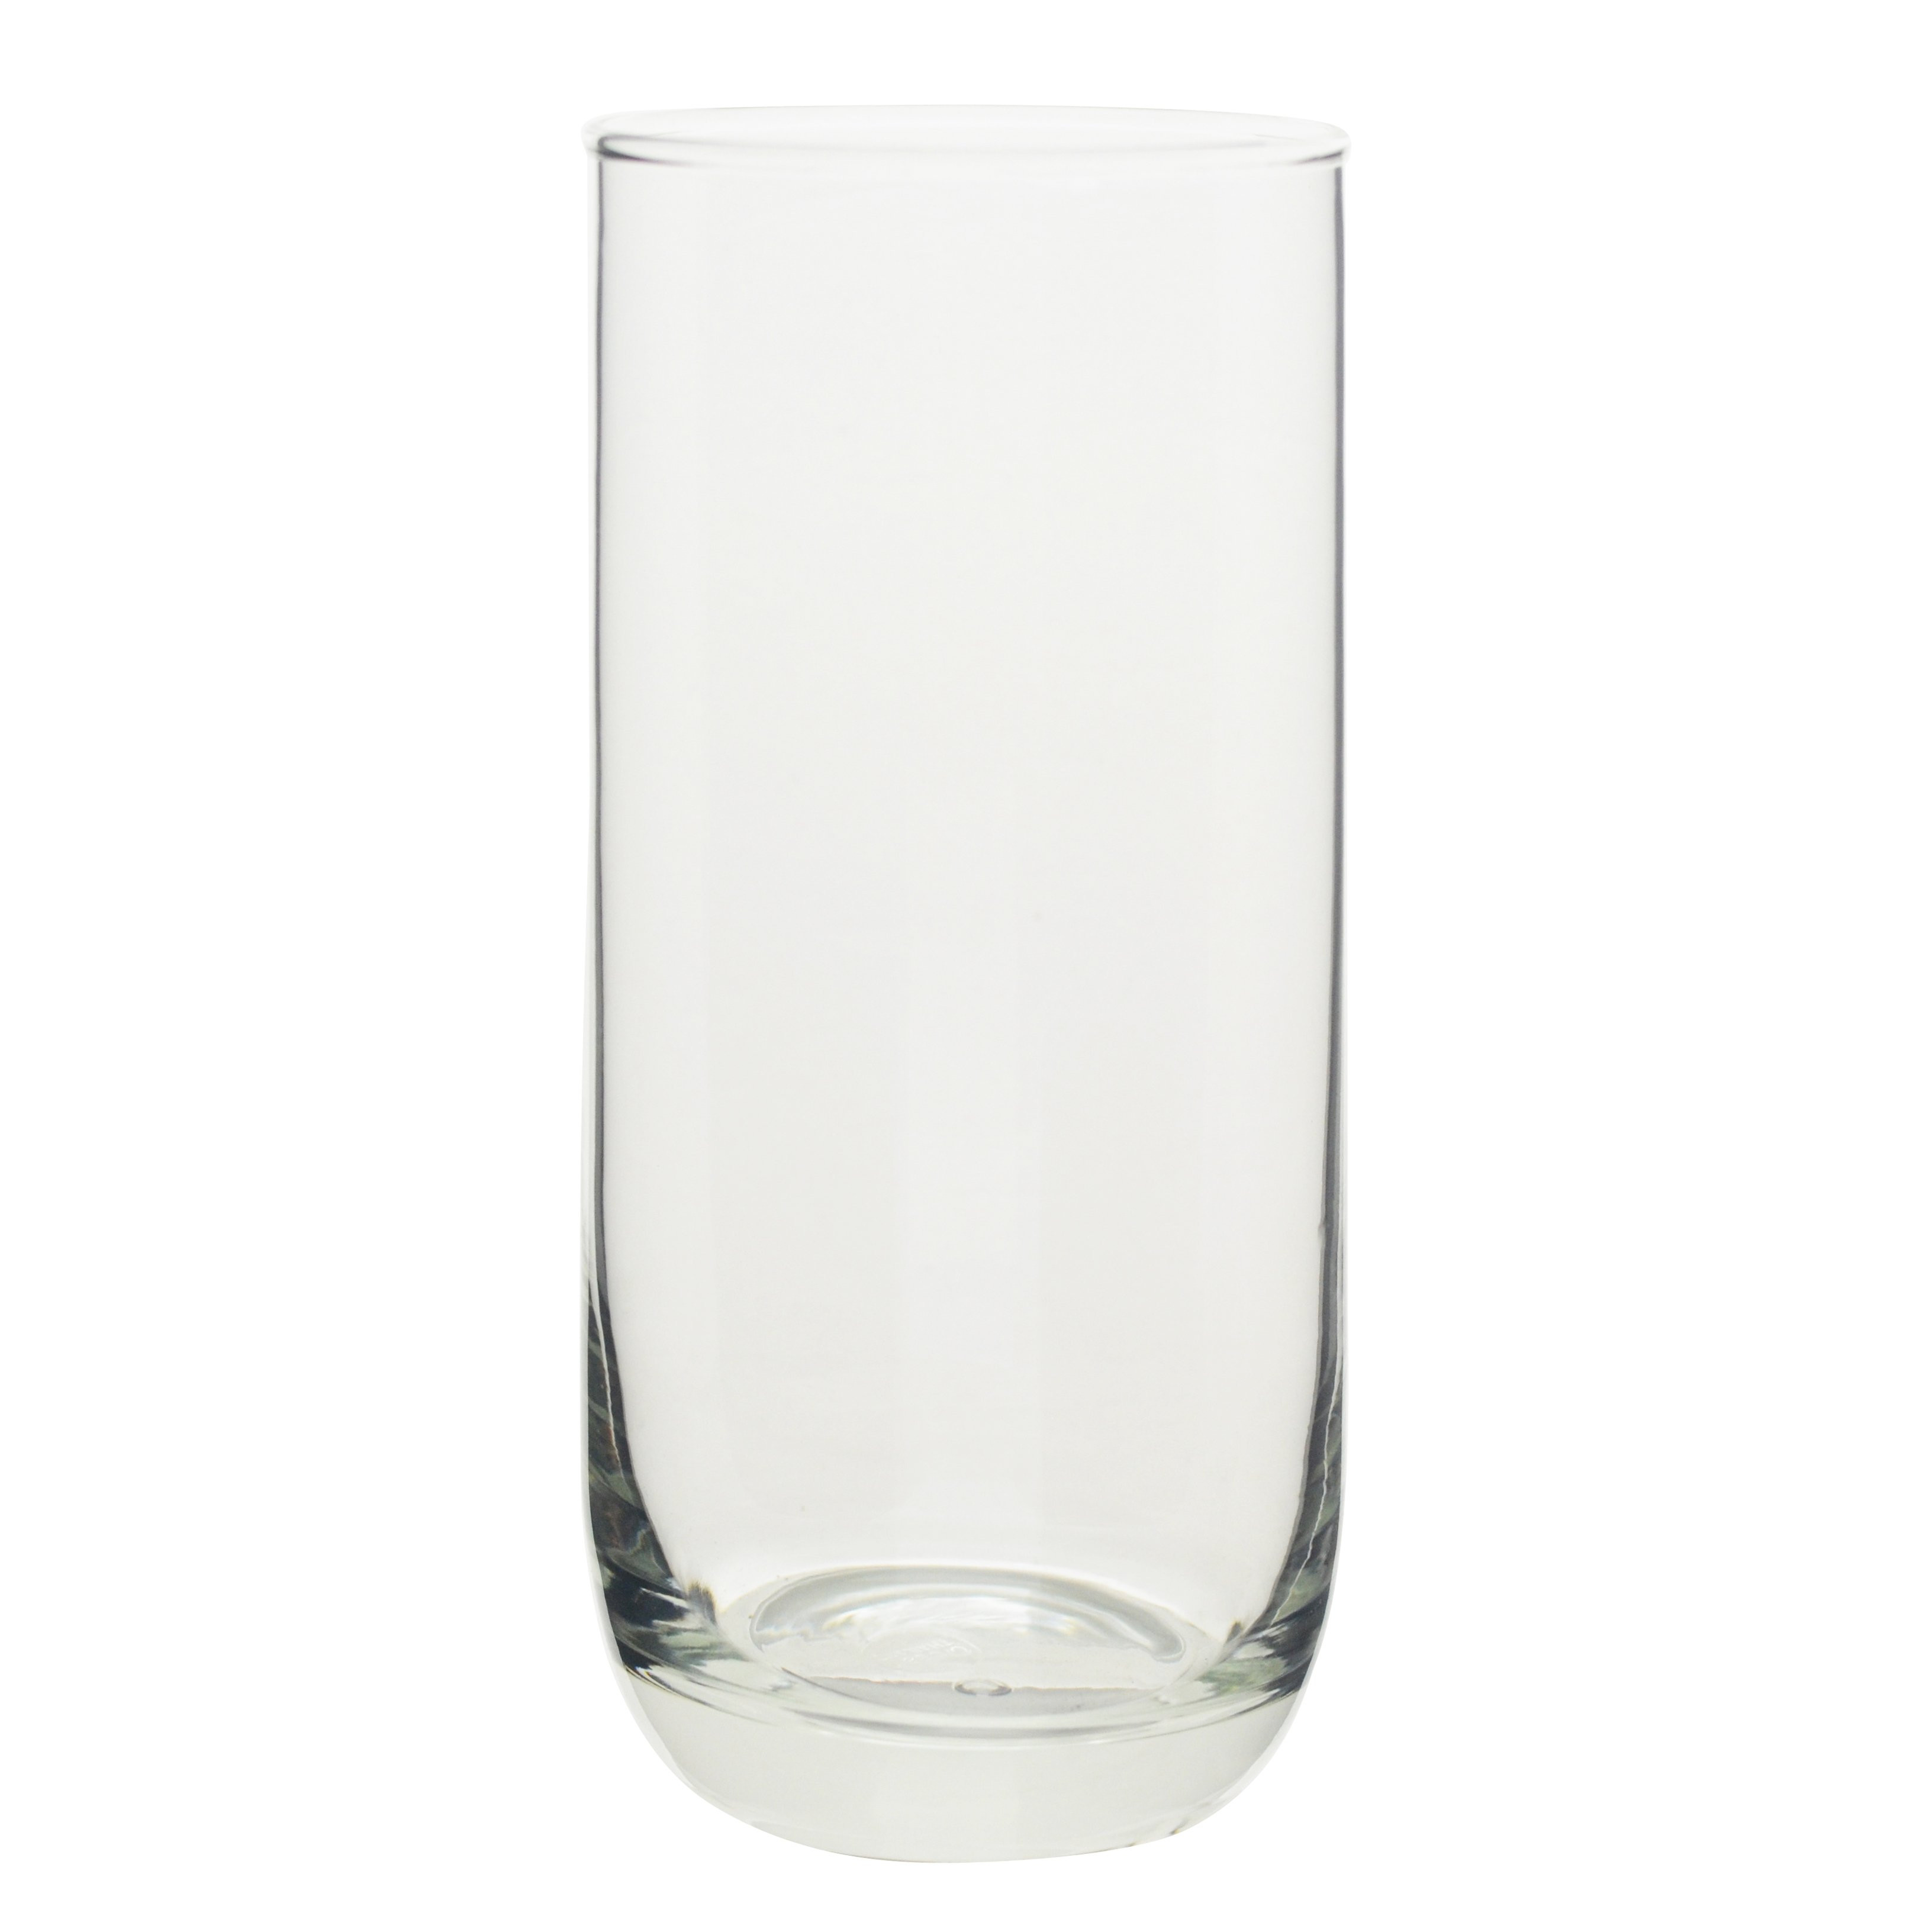 libbey 6 inch cylinder vase of buy set of 6 tumblers online at overstock com our best glasses regarding buy set of 6 tumblers online at overstock com our best glasses barware deals